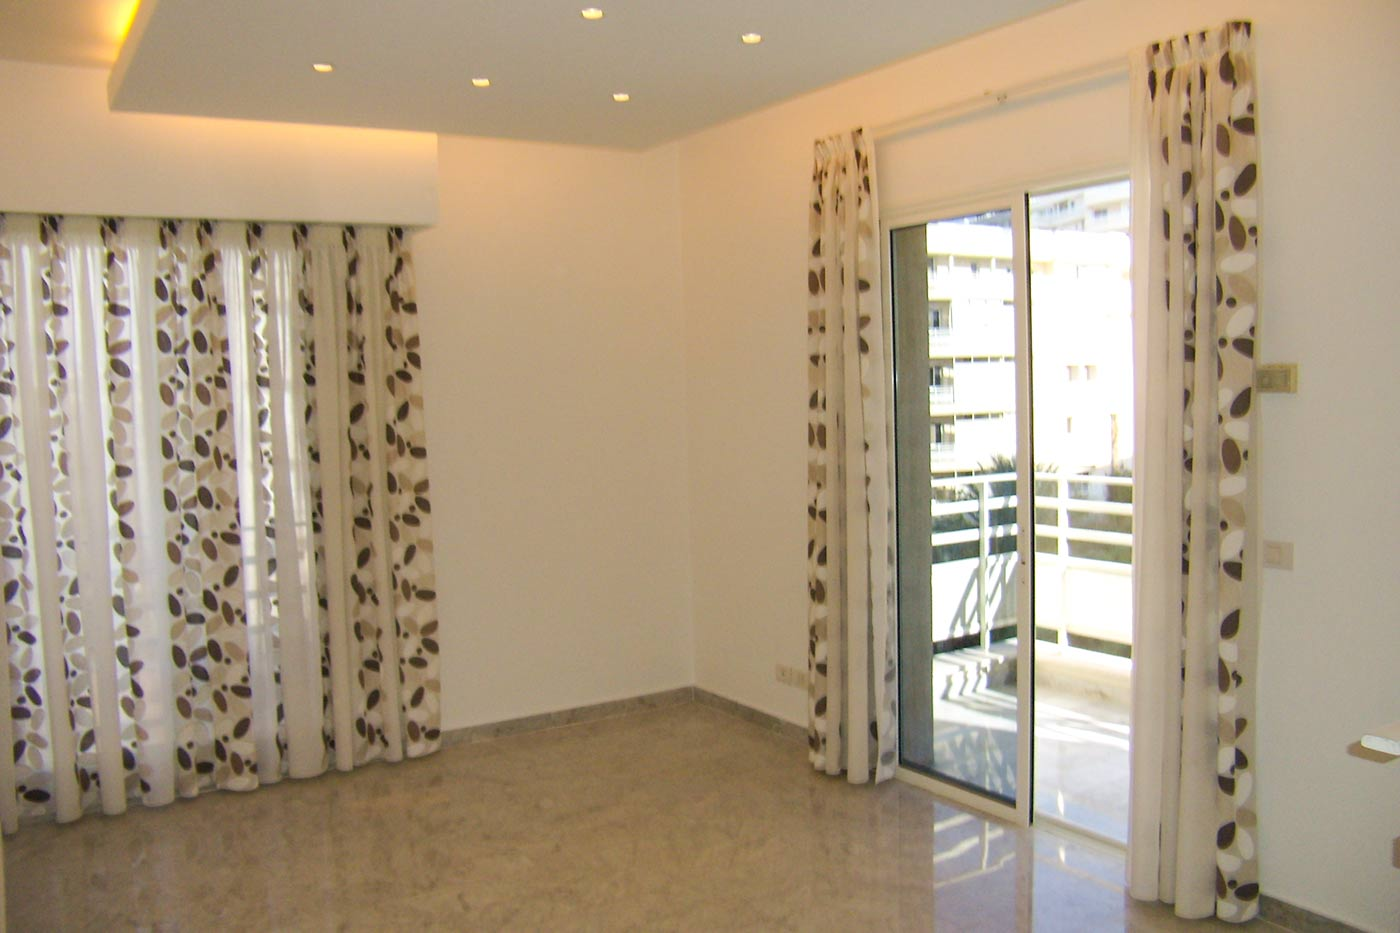 Jaber Residence - Balcony Door with Curtains